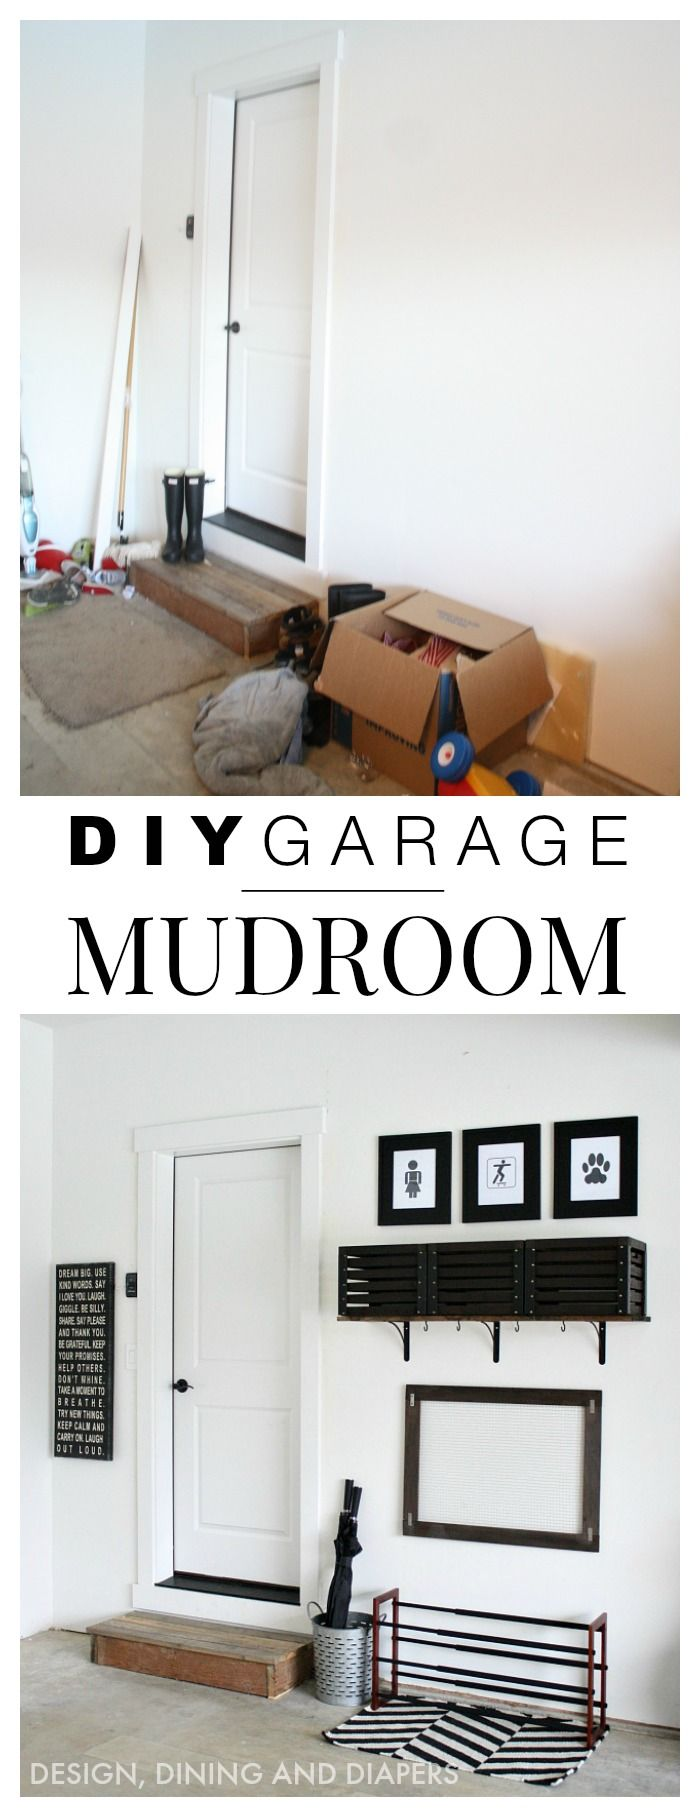 DIY Simple Garage Mudroom. When you don't have a mudroom you can put one in the garage!